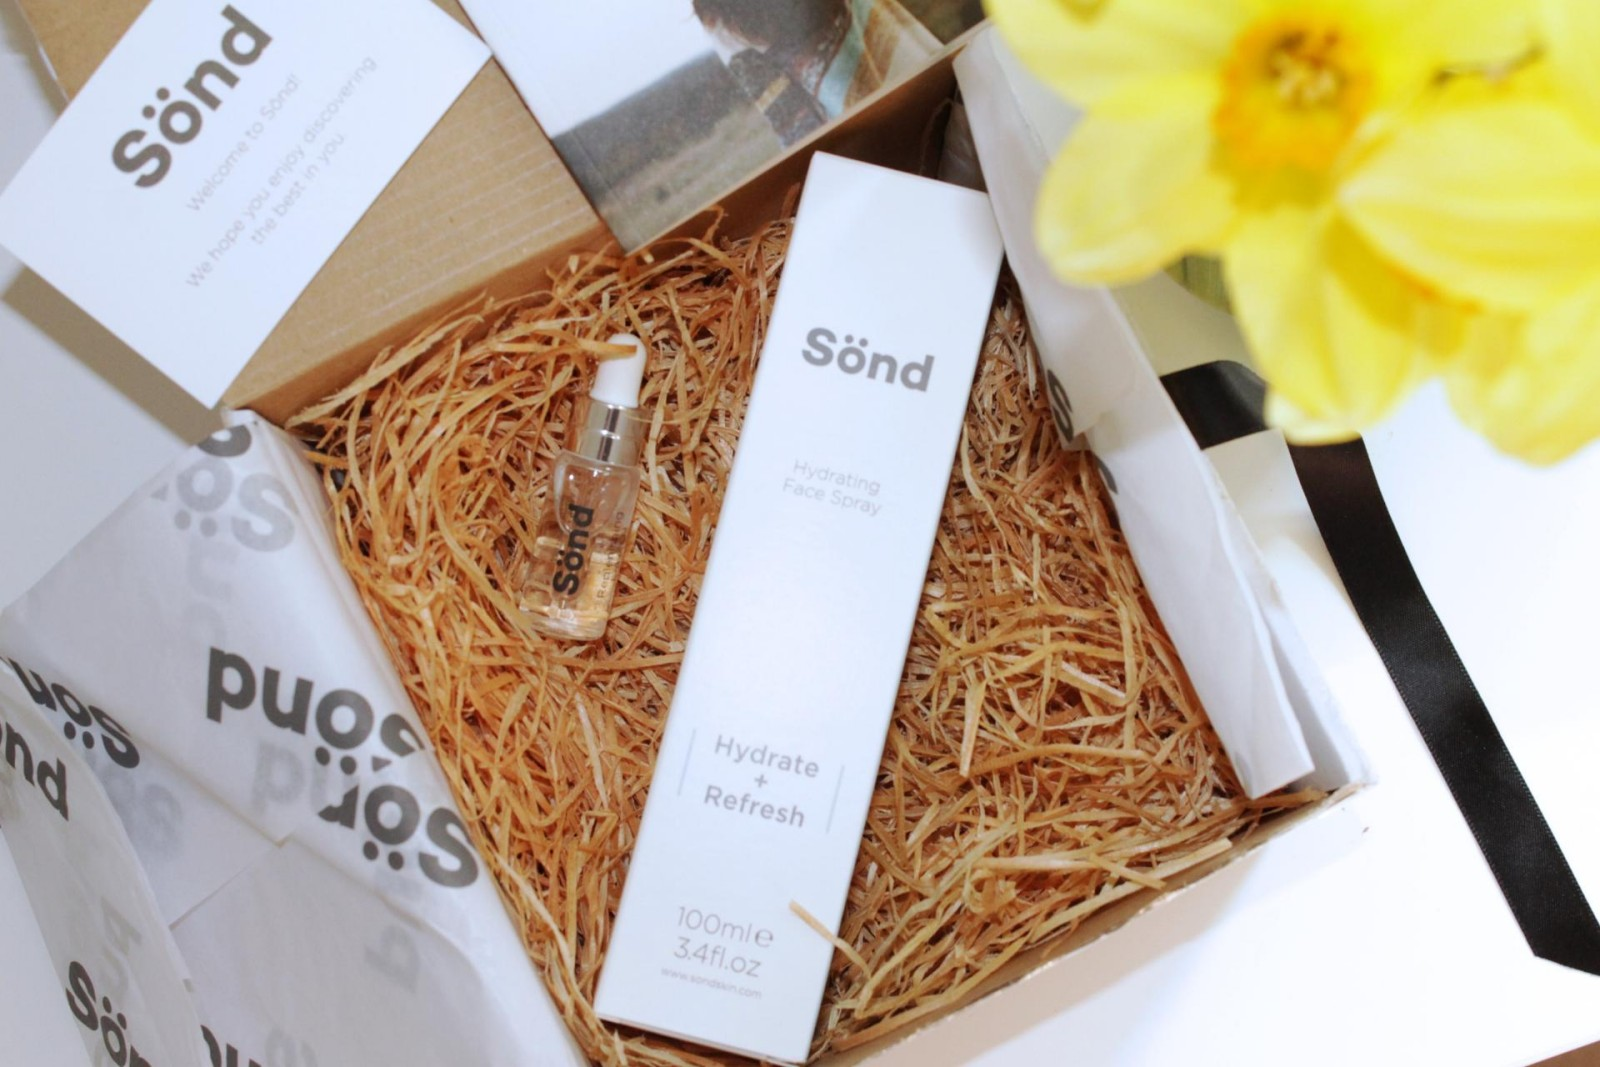 Sond Skincare Review 2